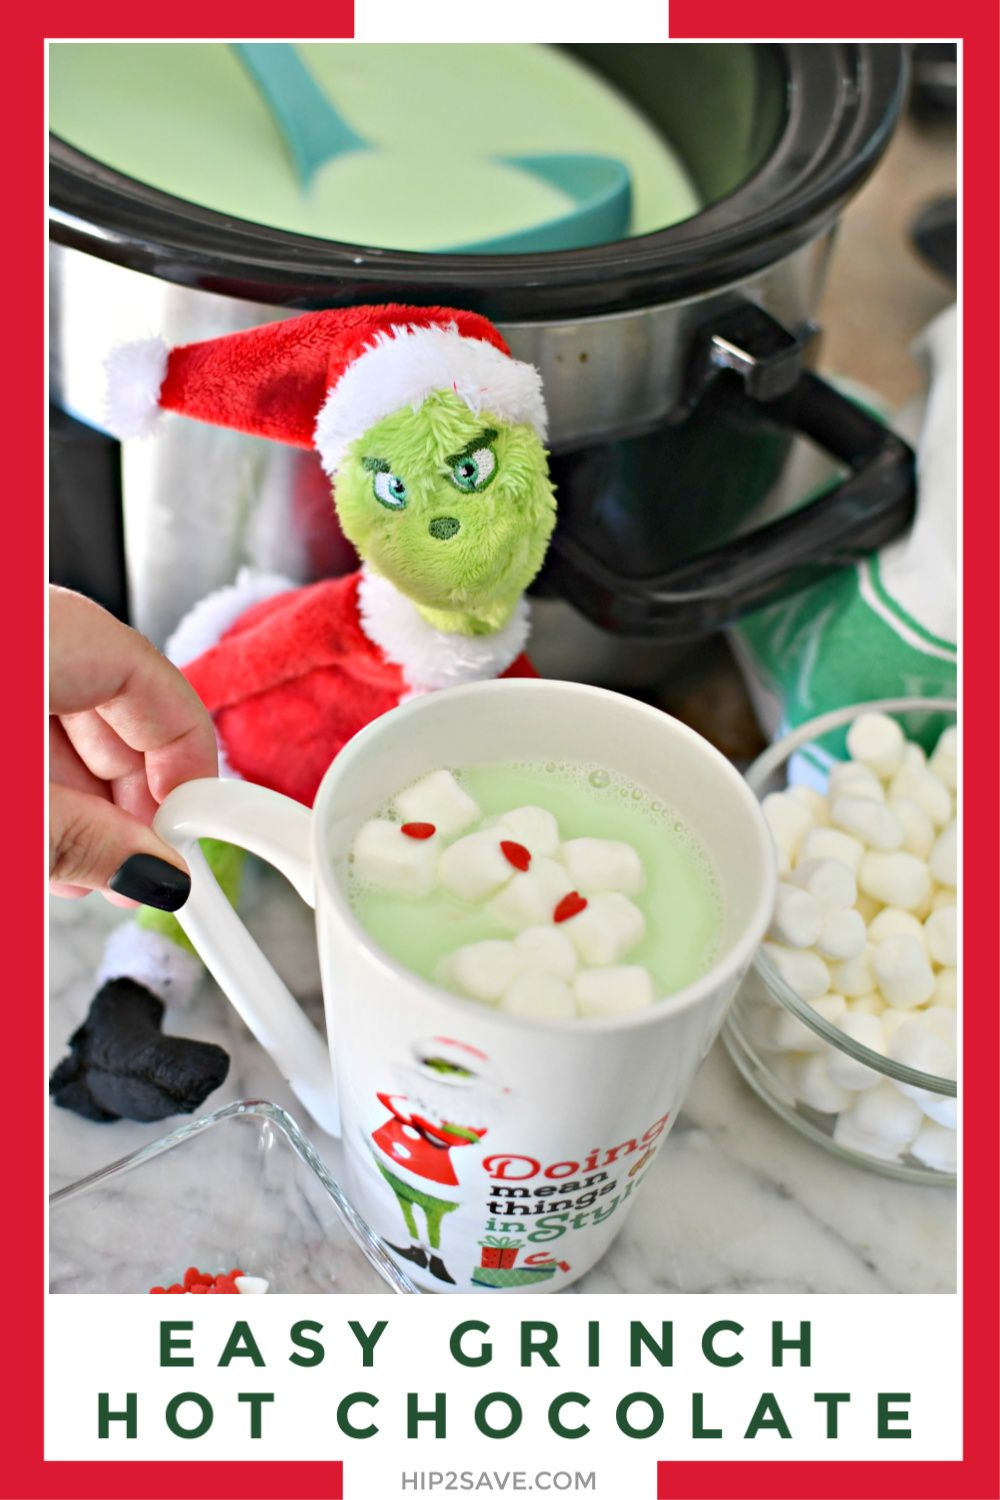 Crock-Pot Hot Chocolate | Grinch Holiday Party Drink